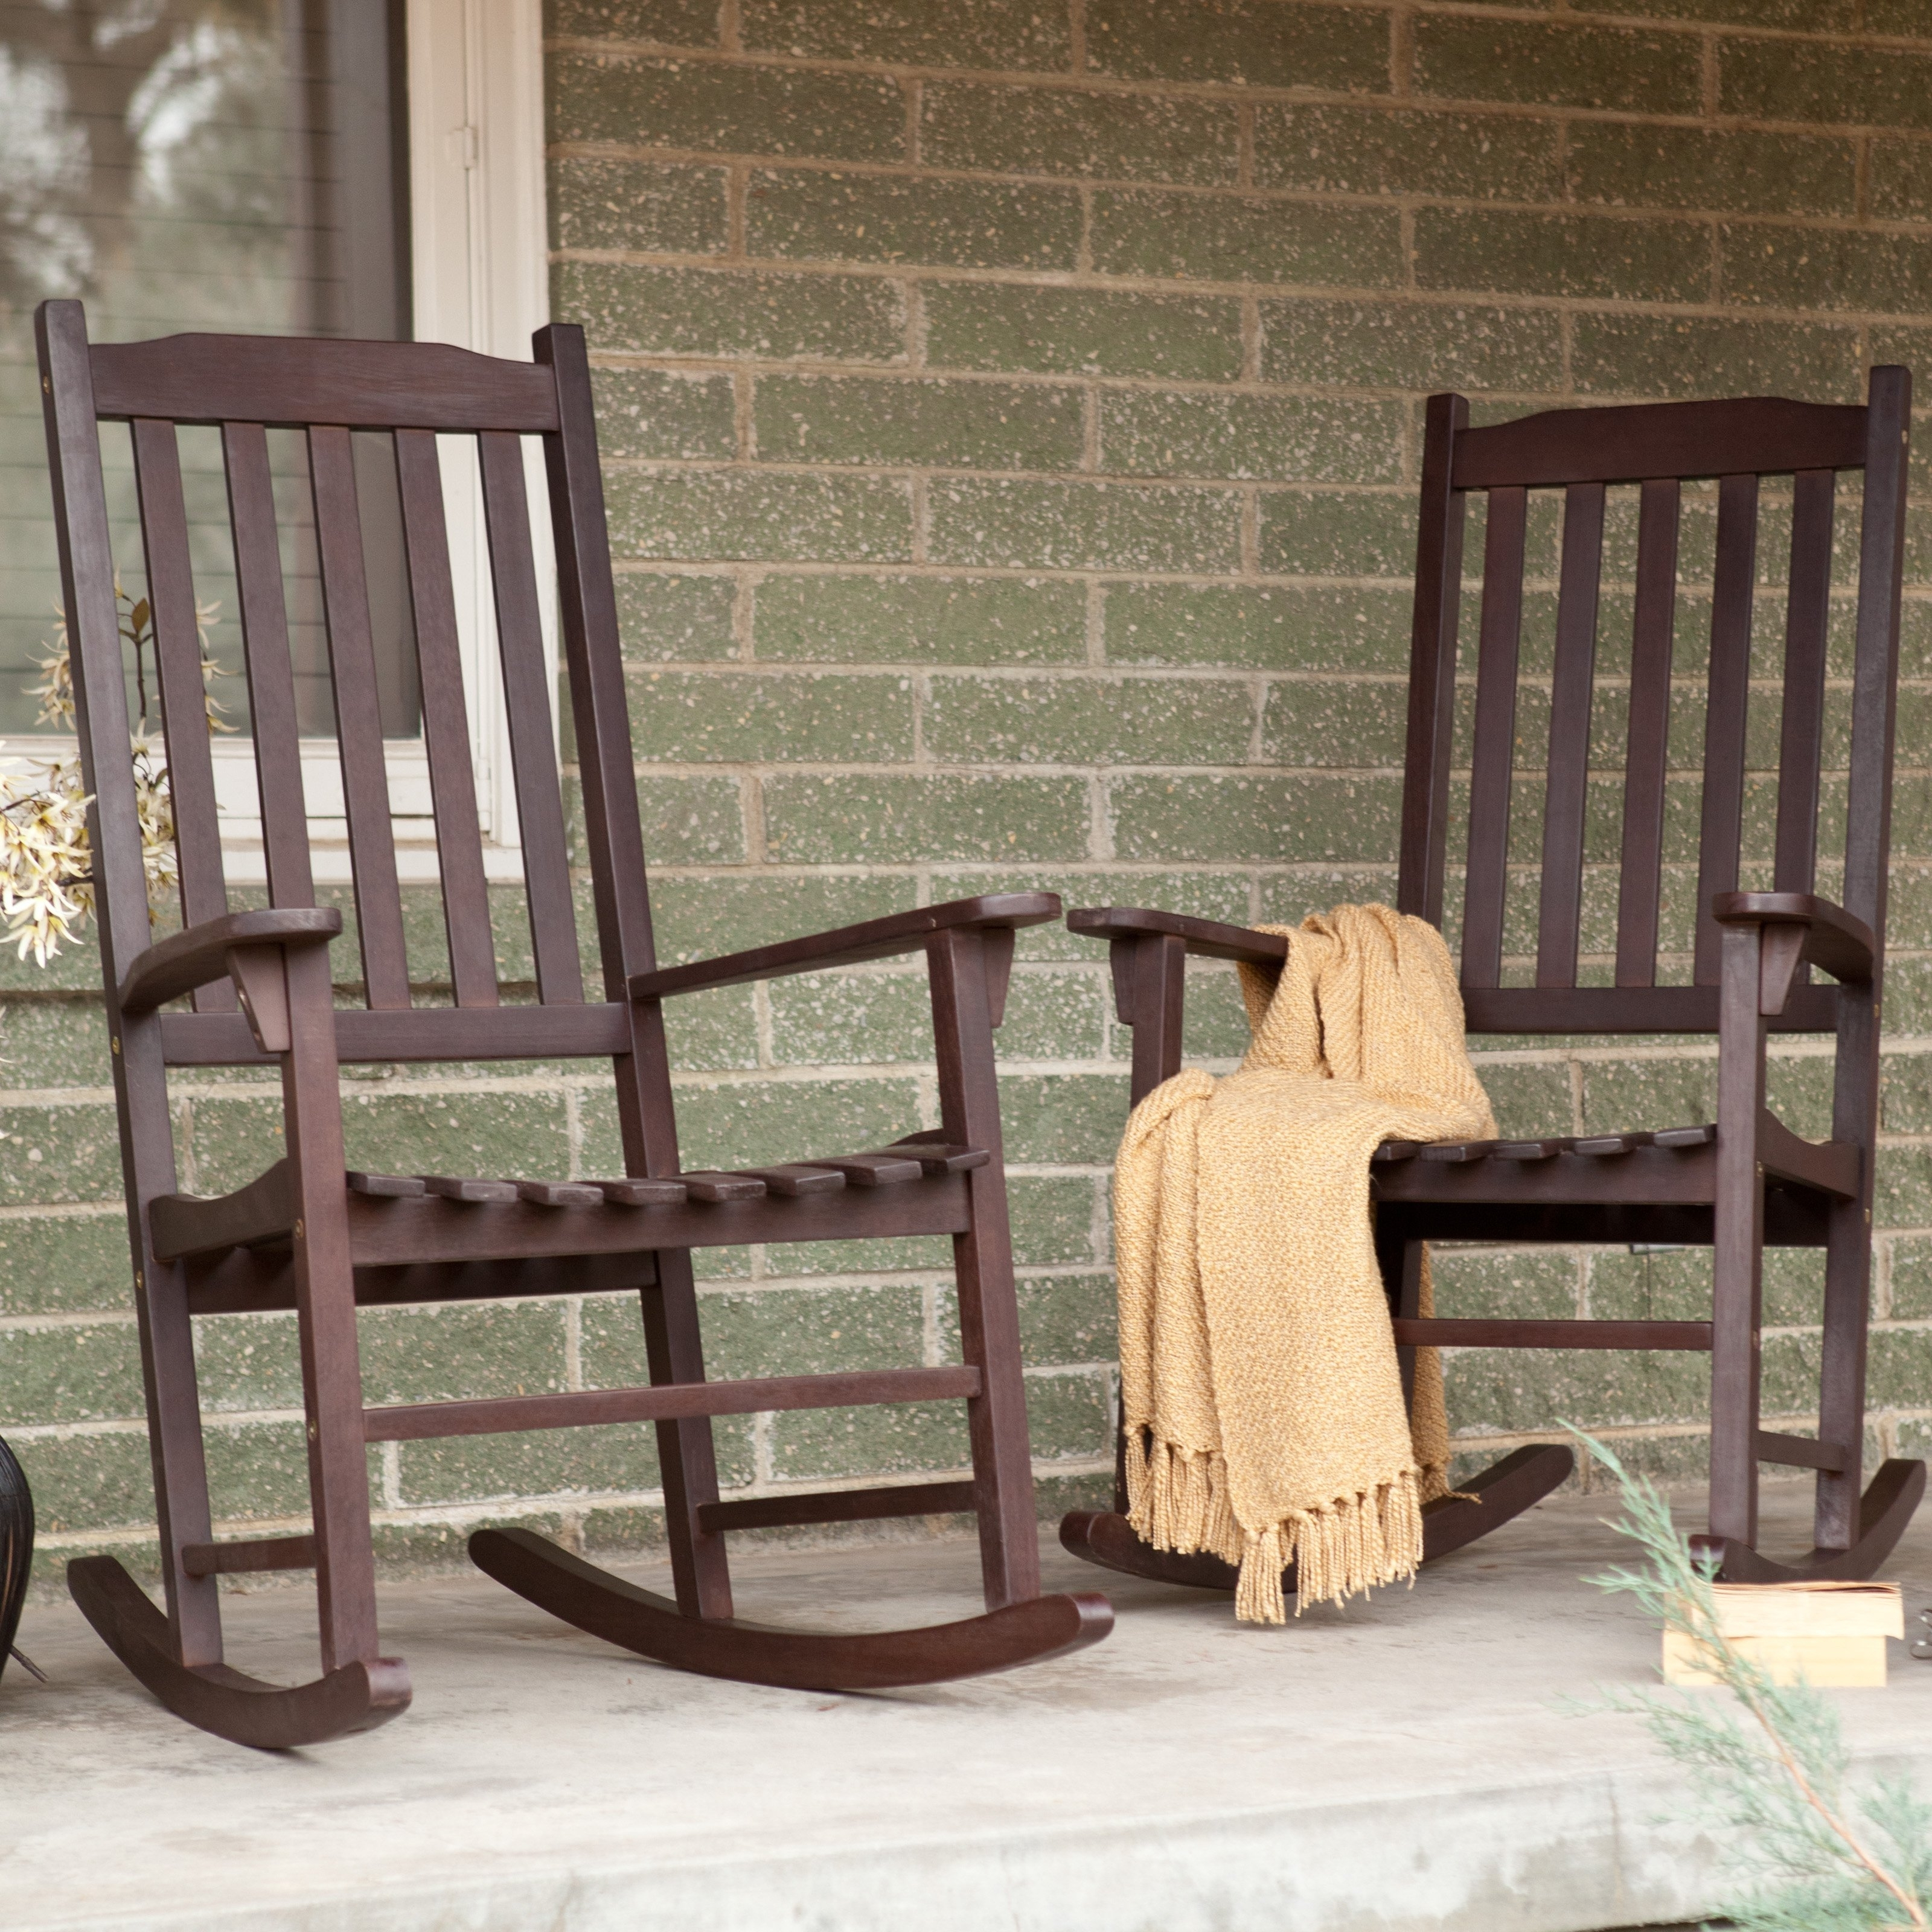 Chair Black Indoor Rocking Chair Black Patio Rocking Chairs Black Pertaining To Recent Wooden Patio Rocking Chairs (View 3 of 15)